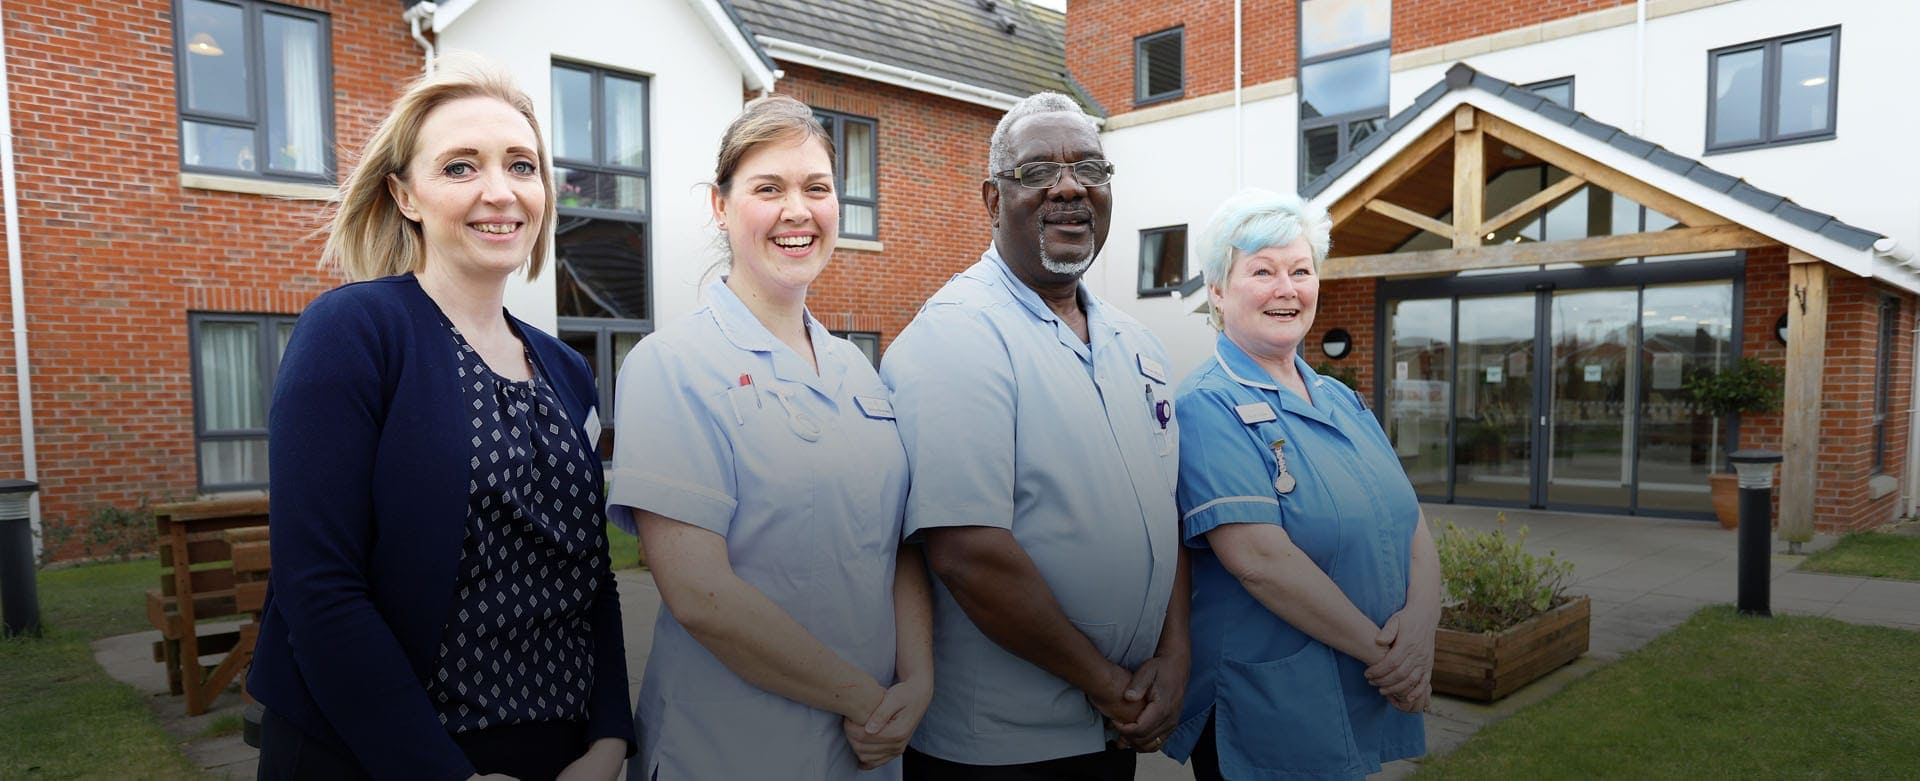 Care home jobs in Shropshire care homes